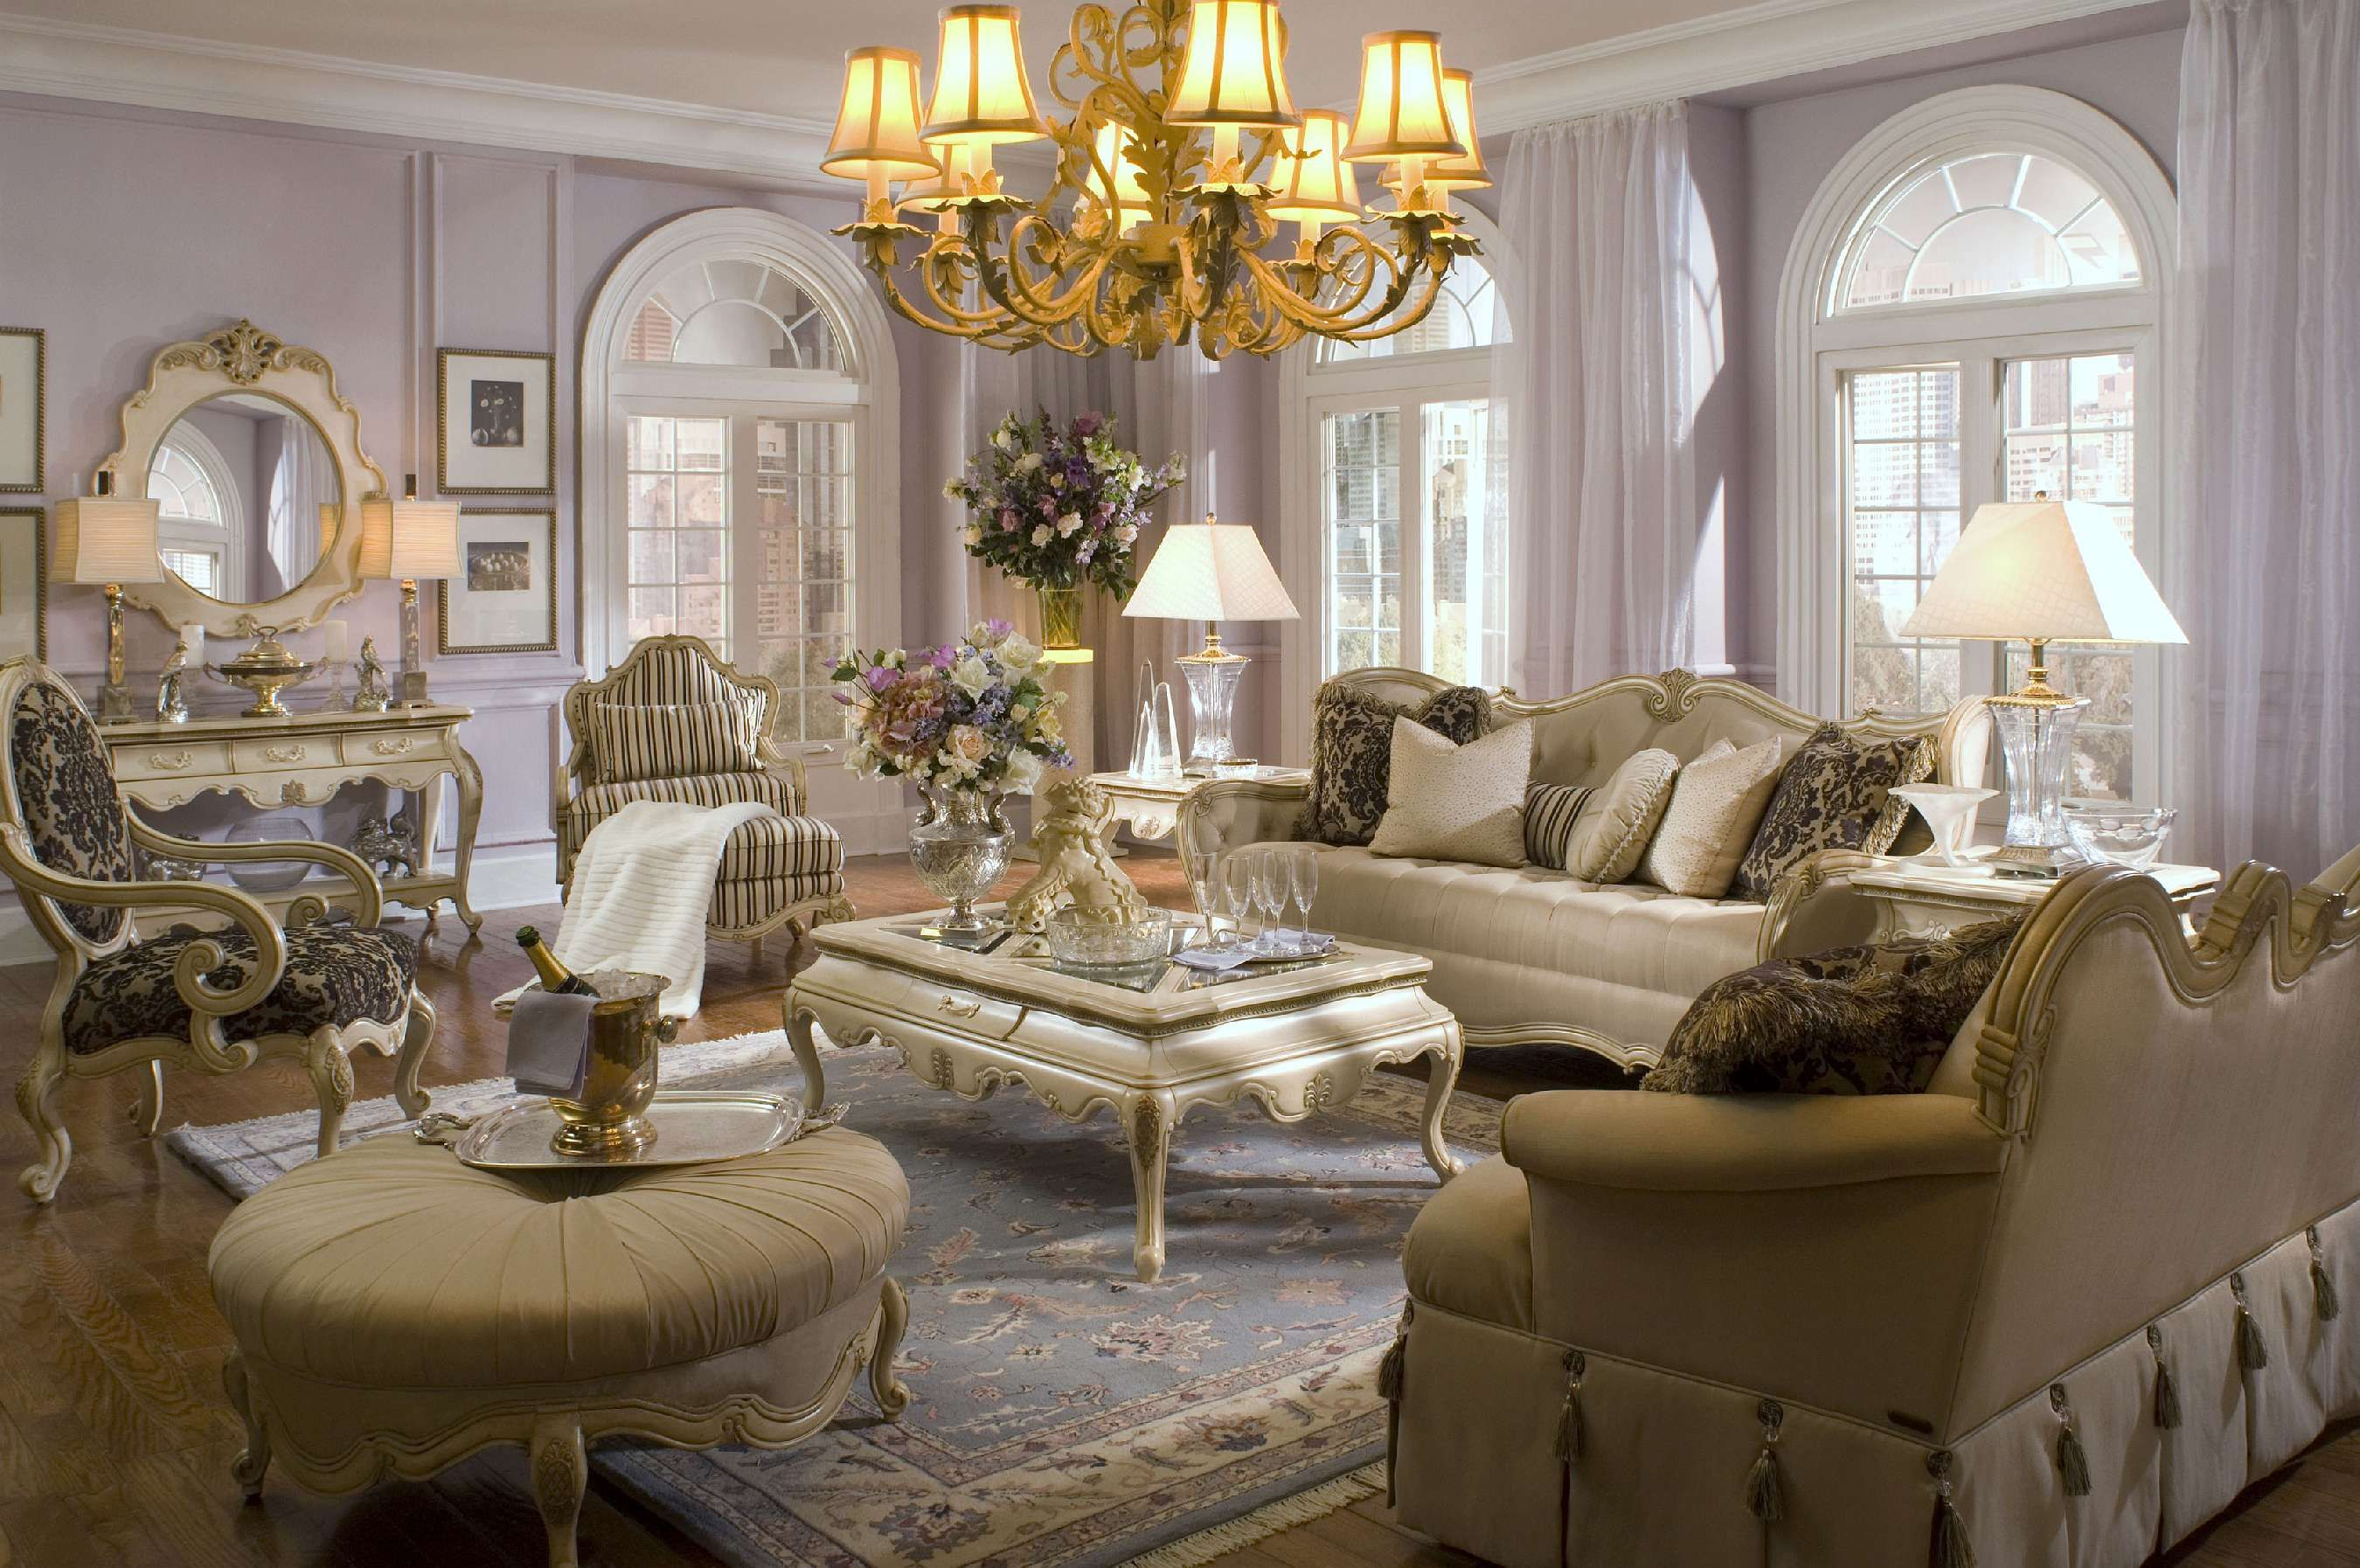 golden Luxury Rooms with lighting Golden Details Luxury Rooms with lighting Golden Details